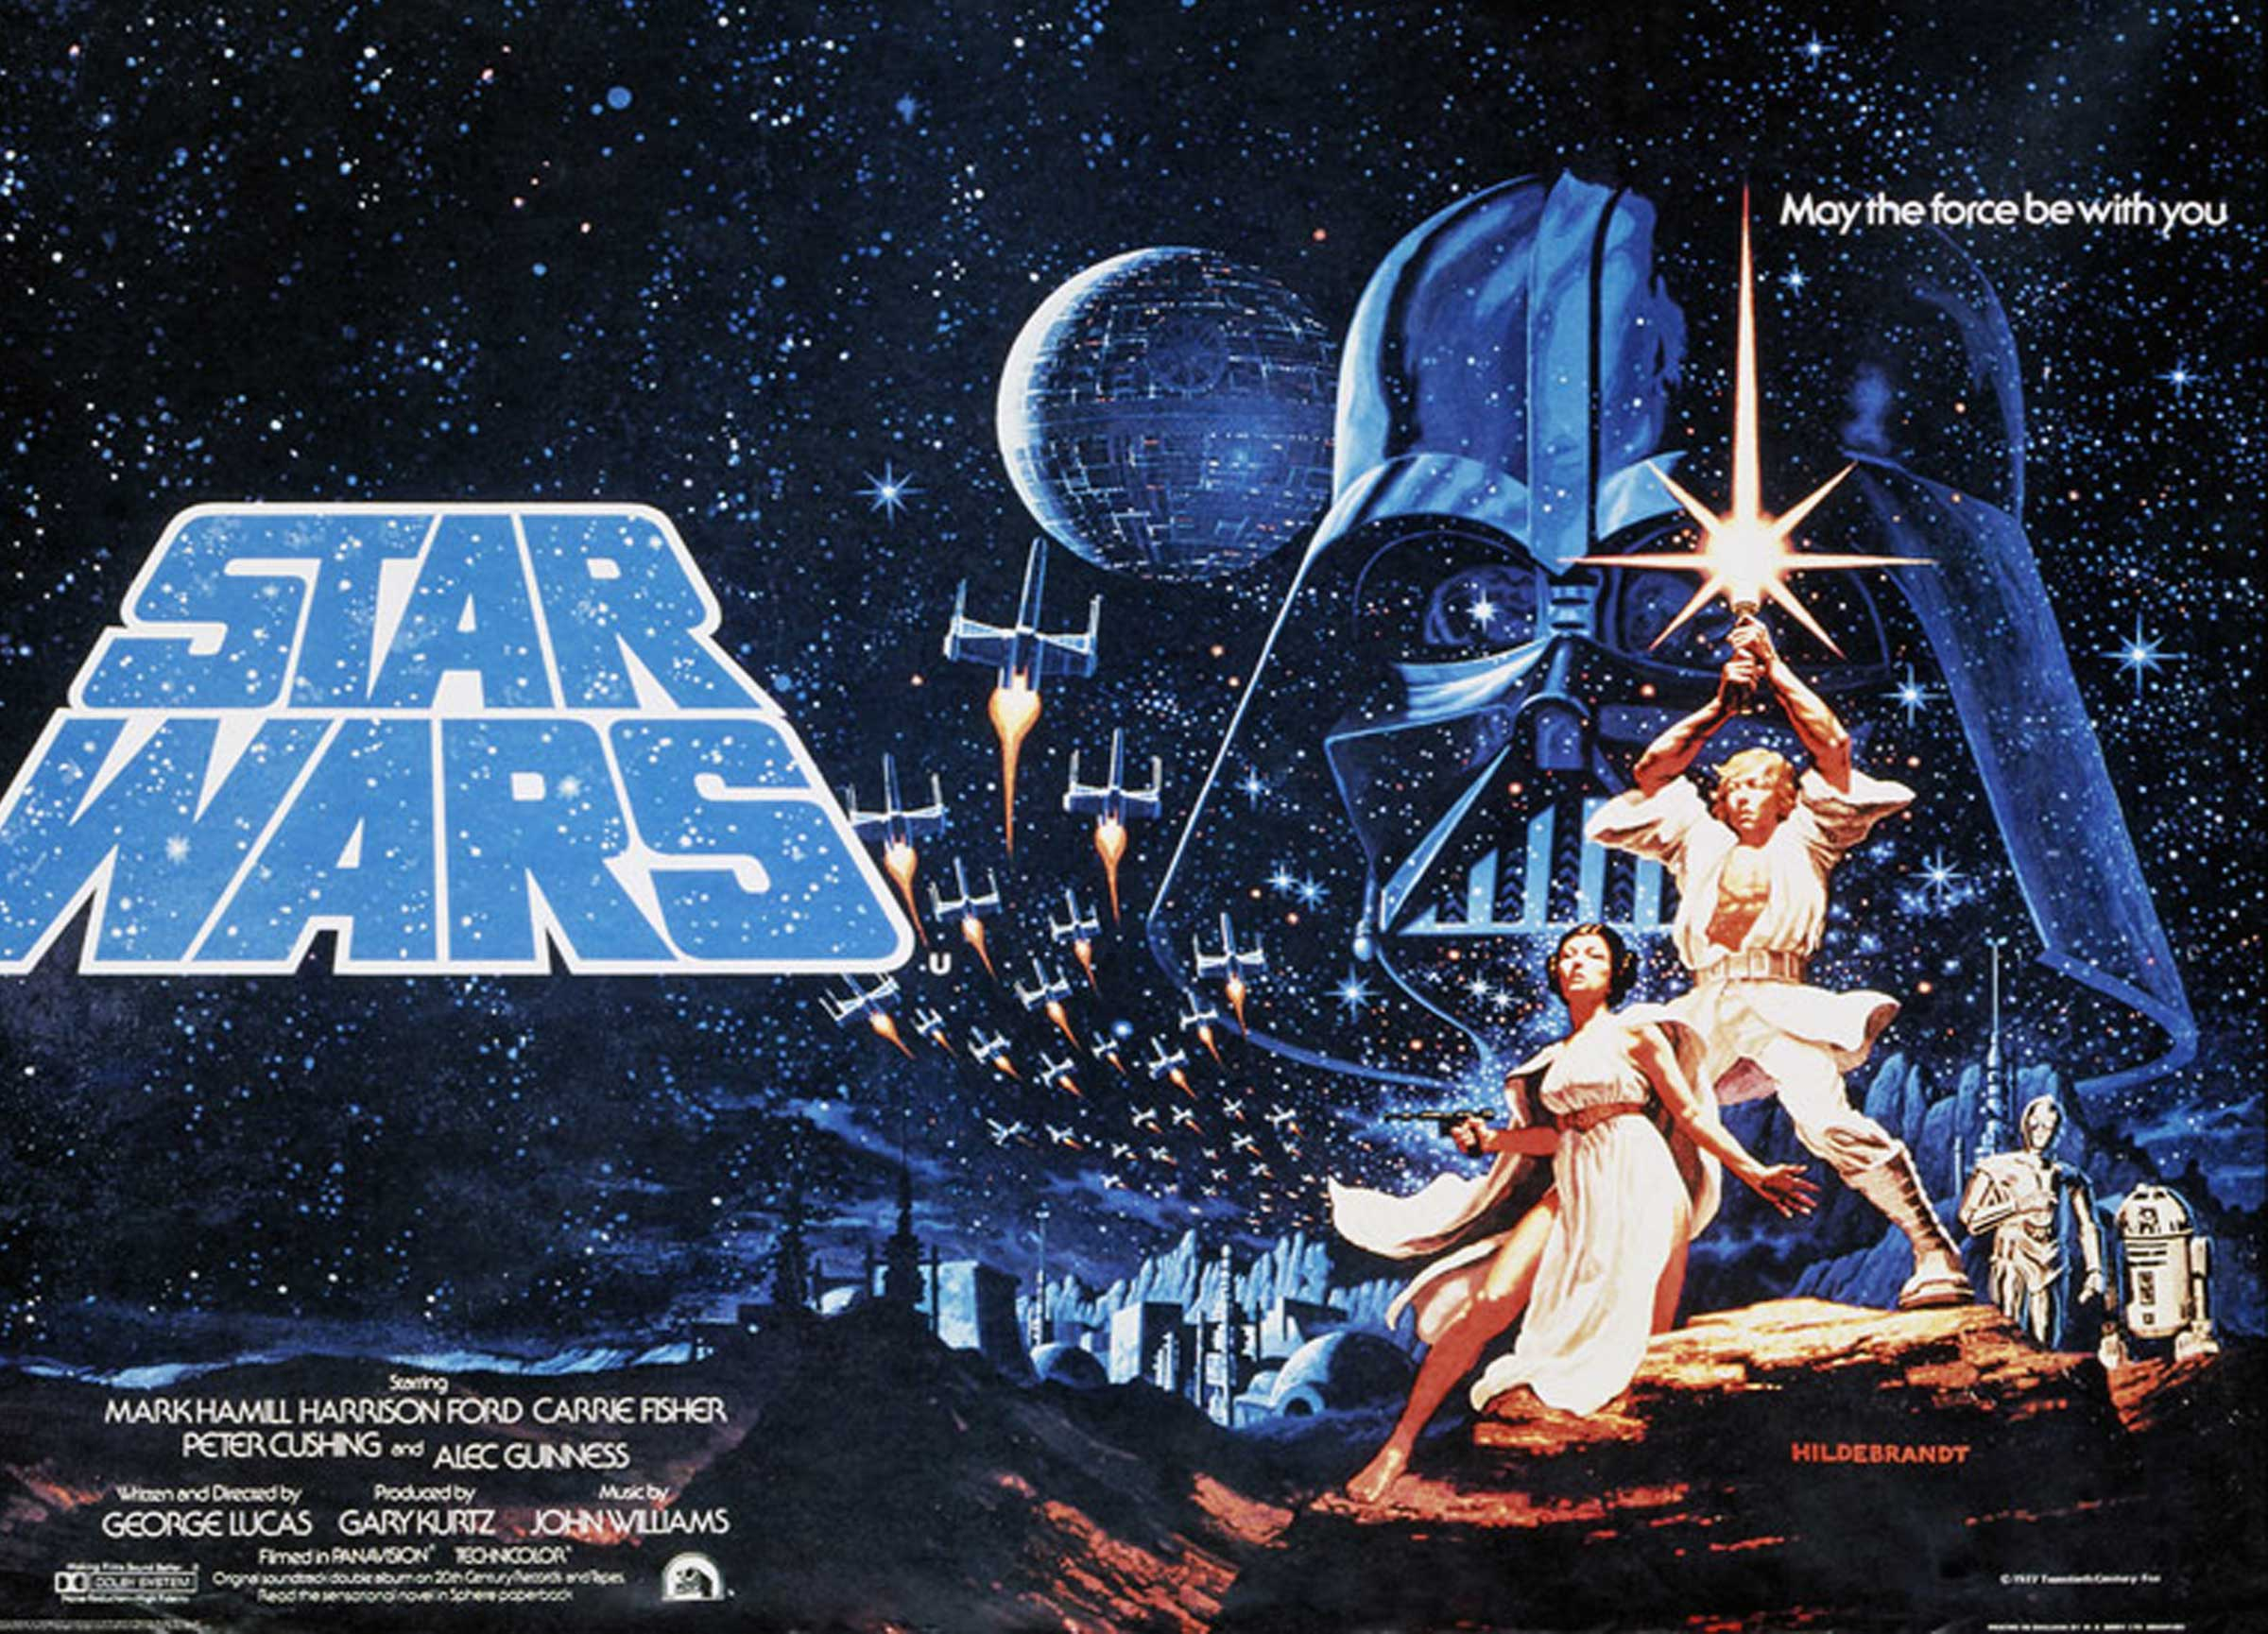 49 1977 Star Wars Wallpaper On Wallpapersafari